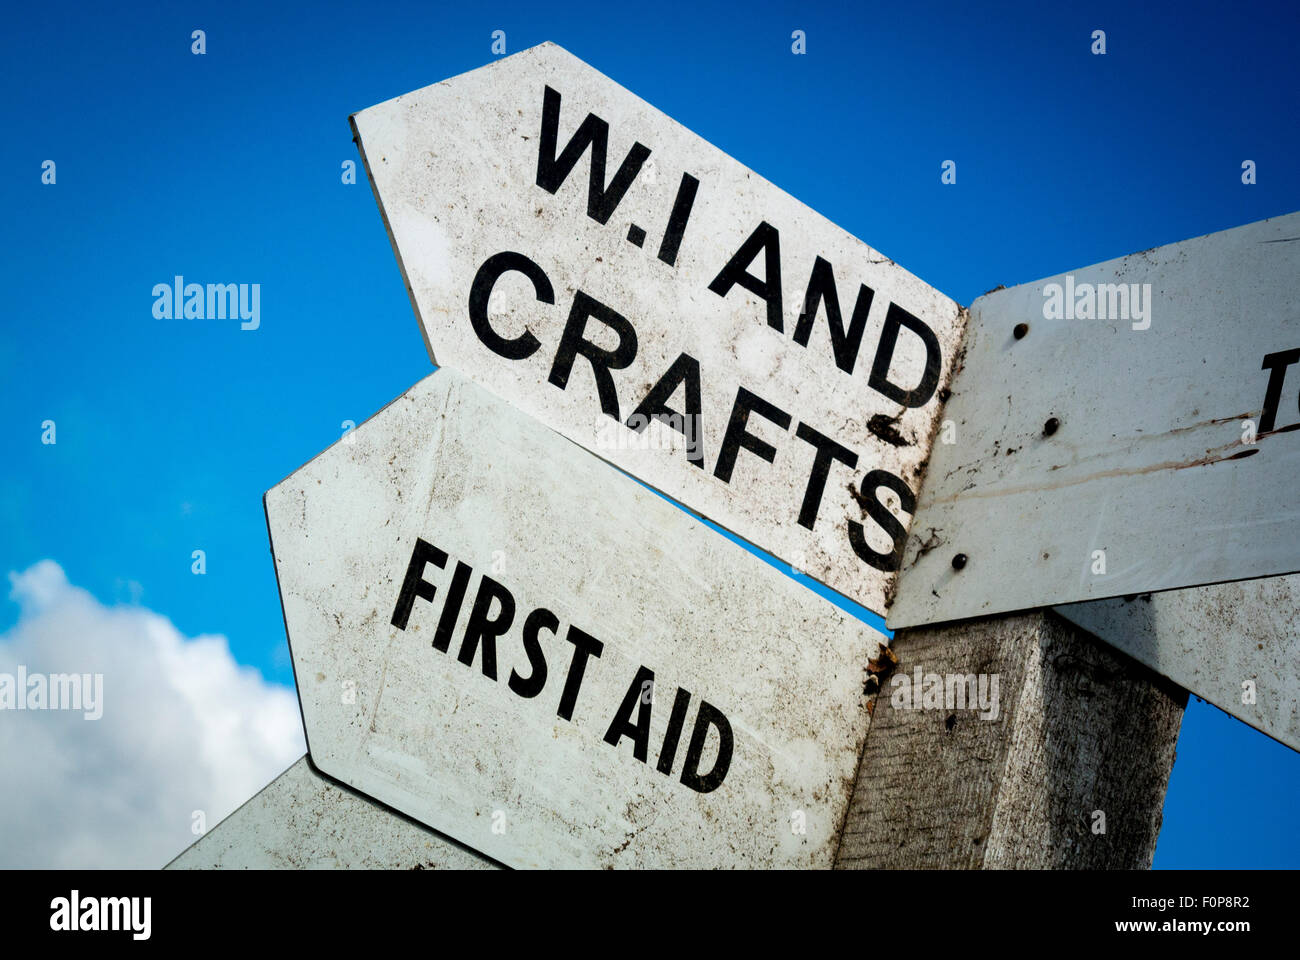 Signpost at local country show giving directions to WI and Crafts and First Aid. - Stock Image